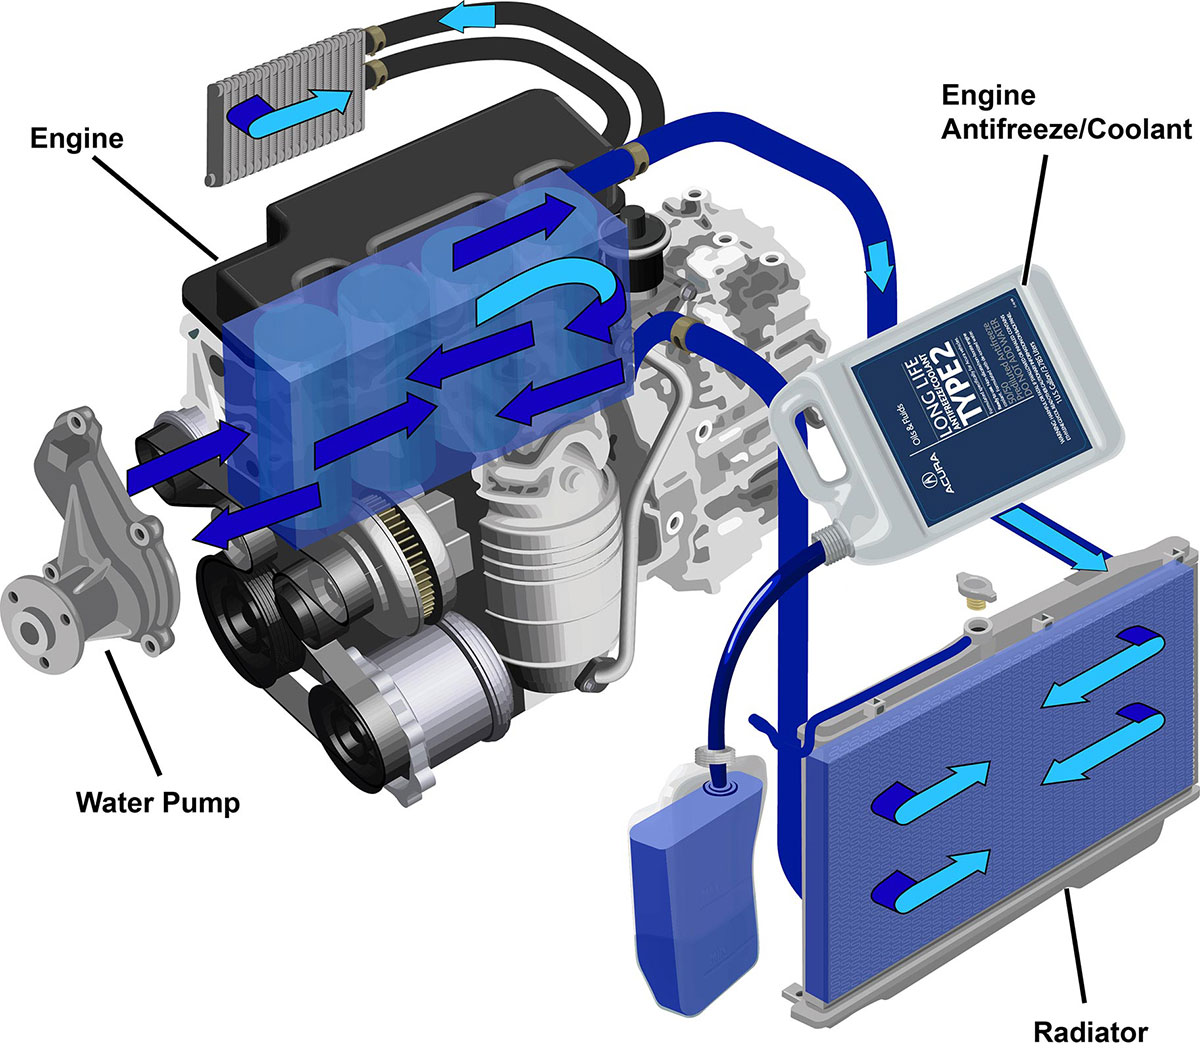 Acura Engine Antifreeze Coolant Service Technical Resources Corrosion Around Cooling System Click Here For Full Size Image